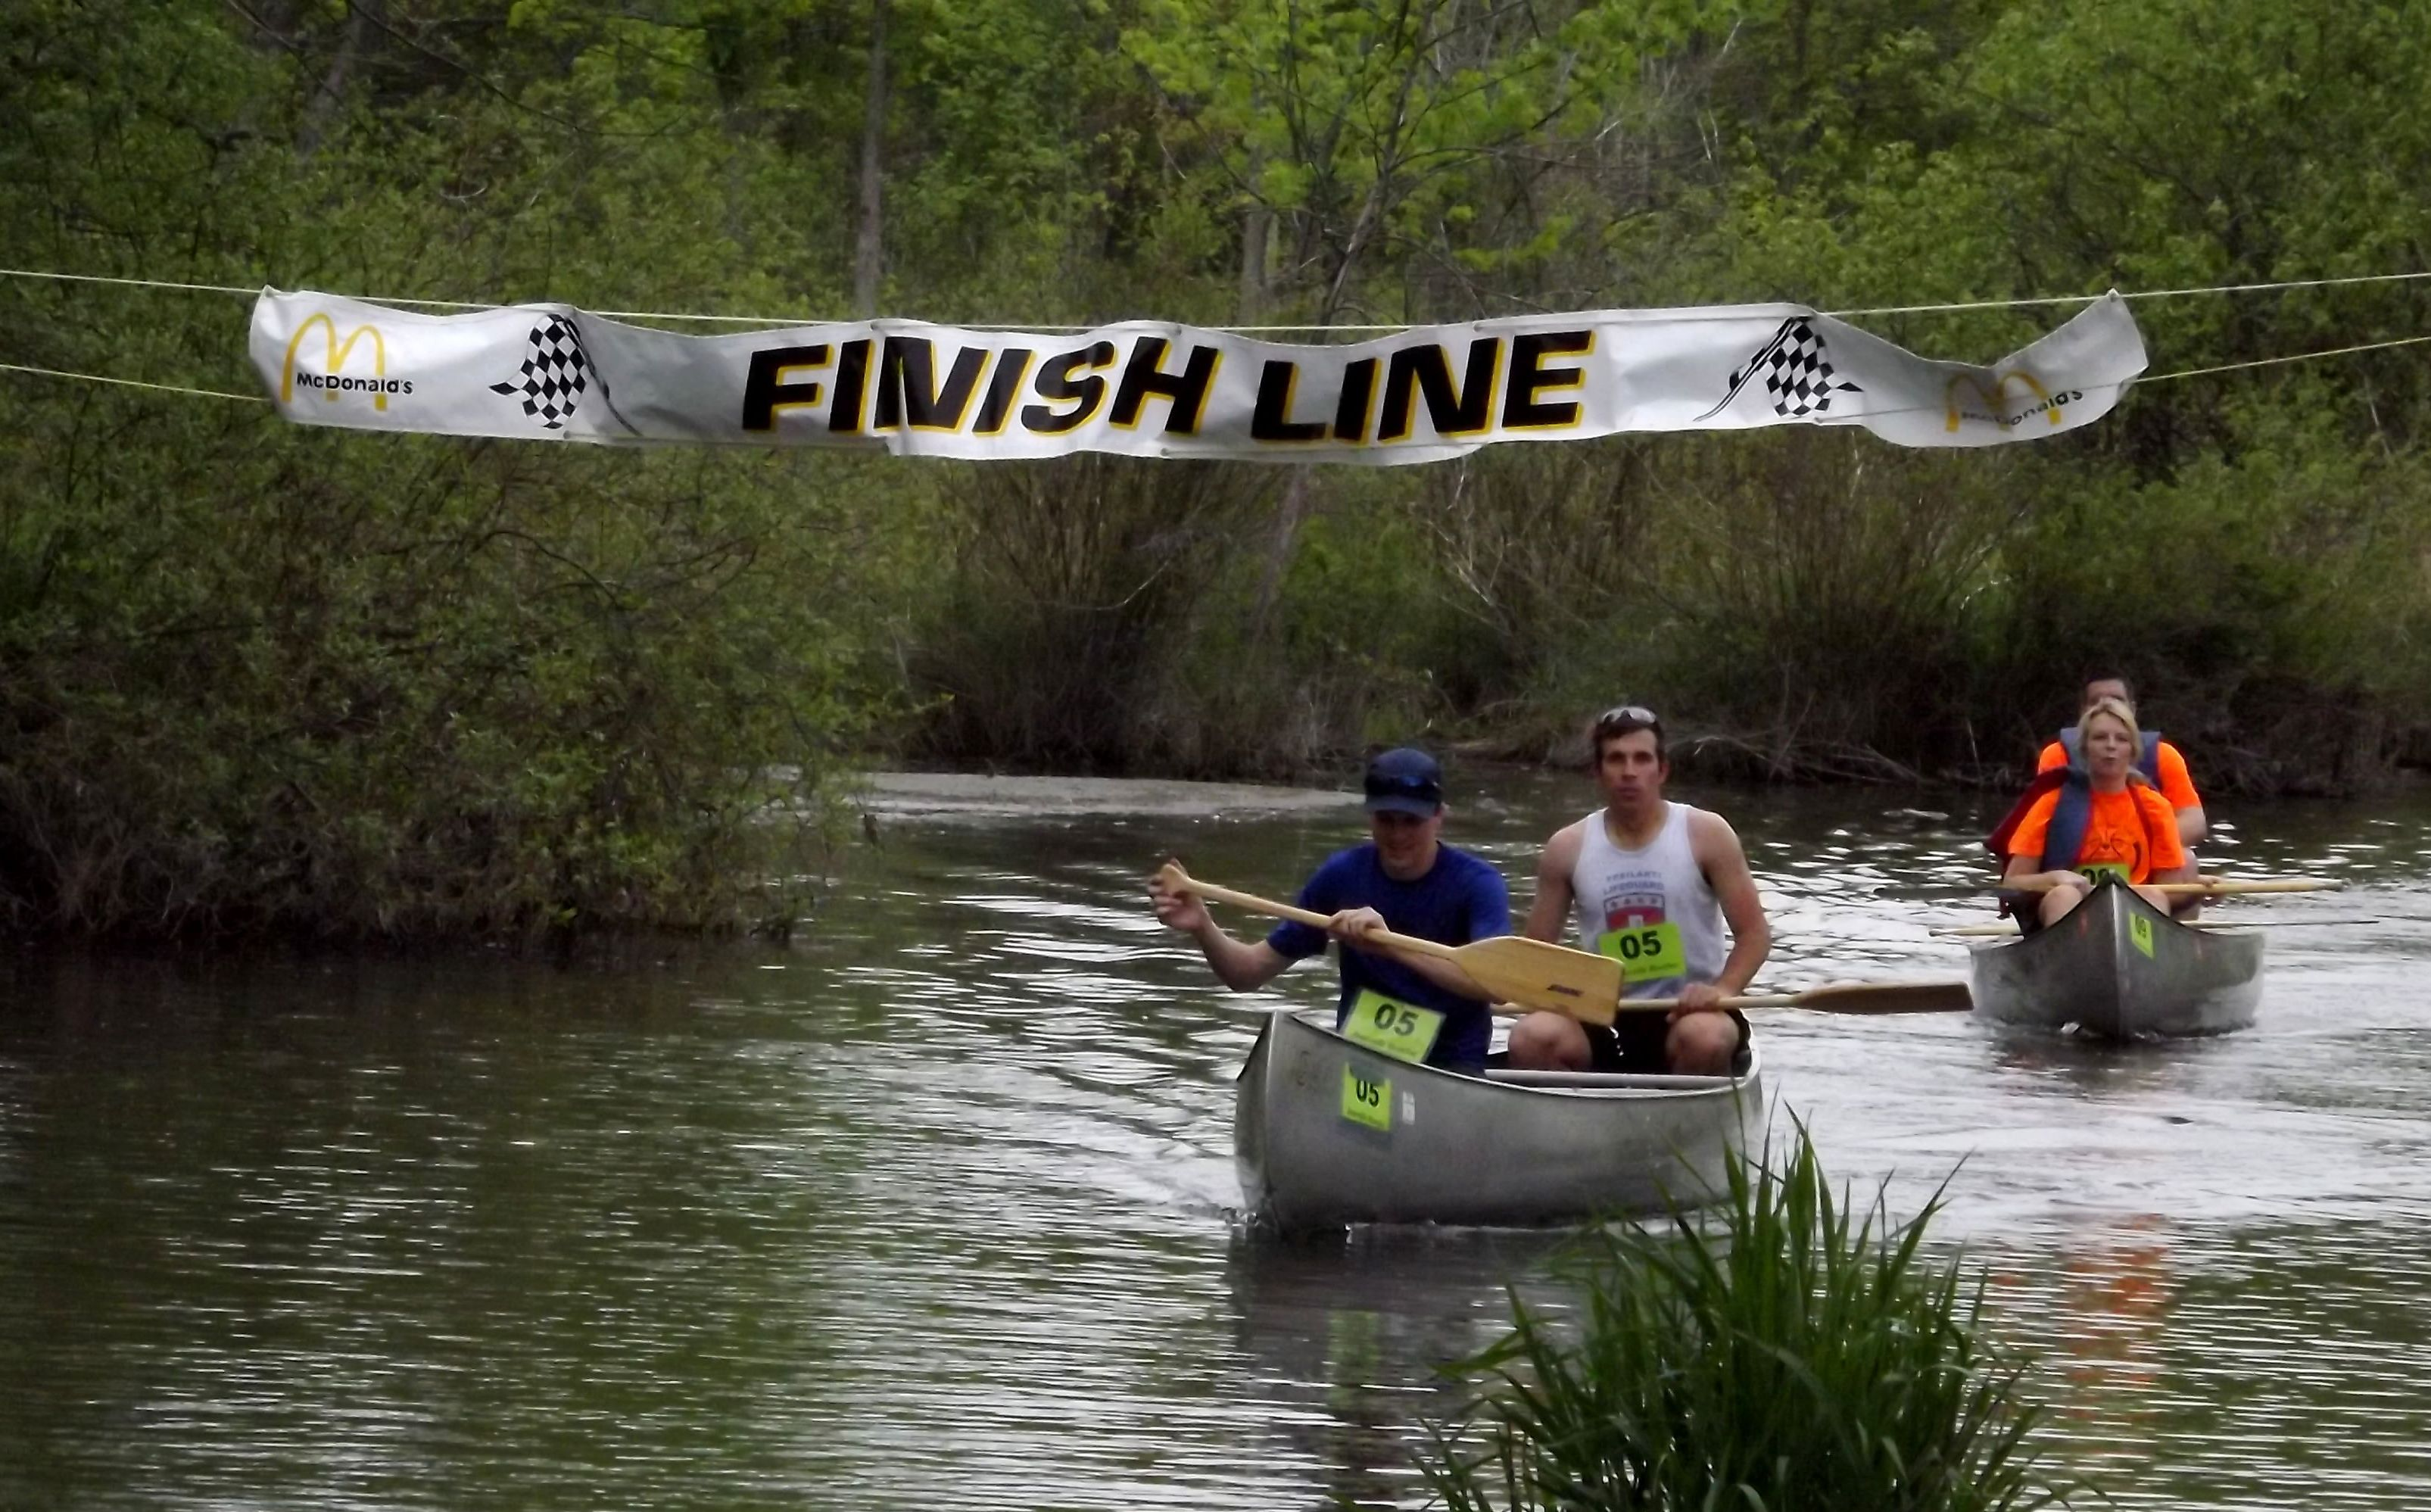 finish line of canoe race on river